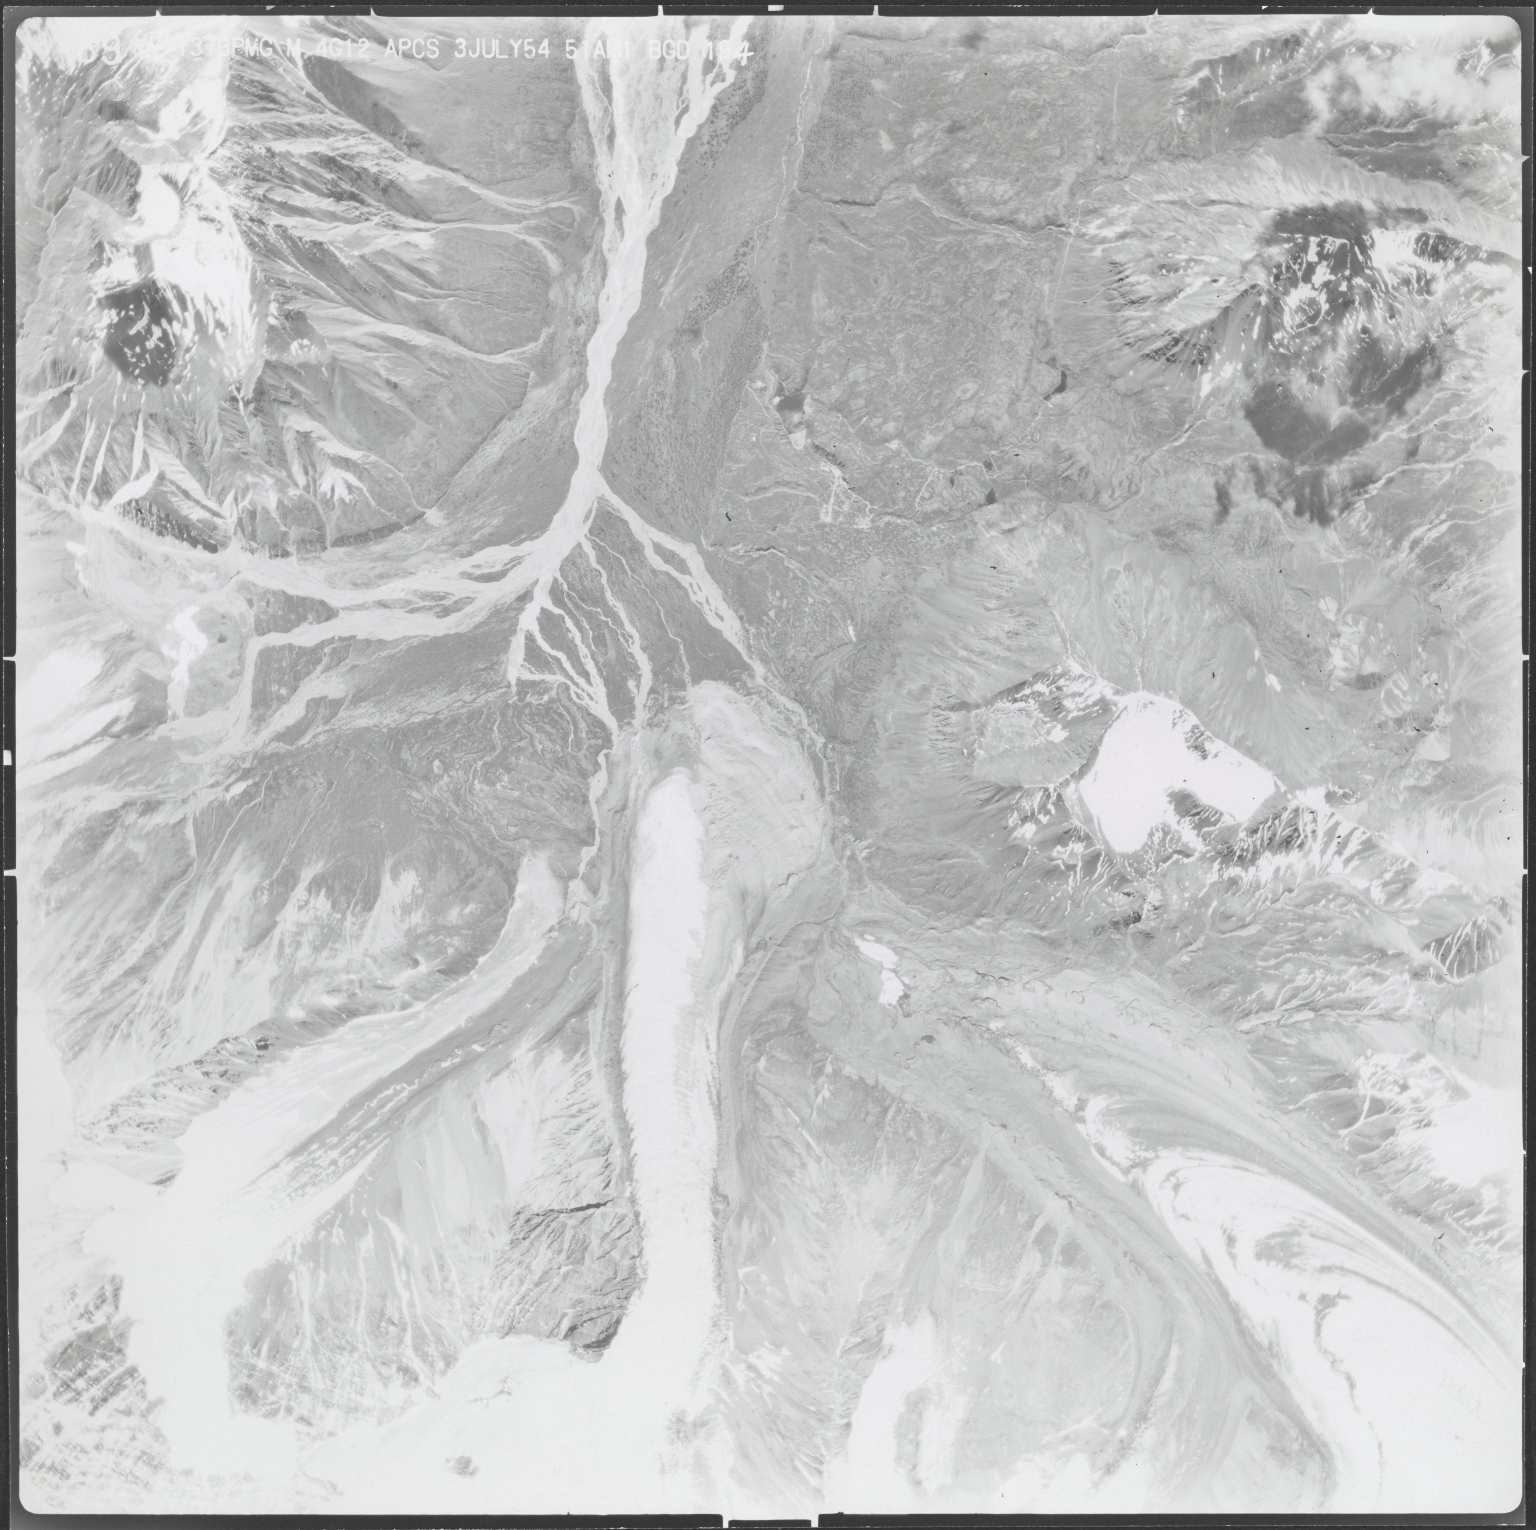 Unknown glaciers near source of Middle Fork Chistochina River, aerial photograph M4G12 89, Alaska